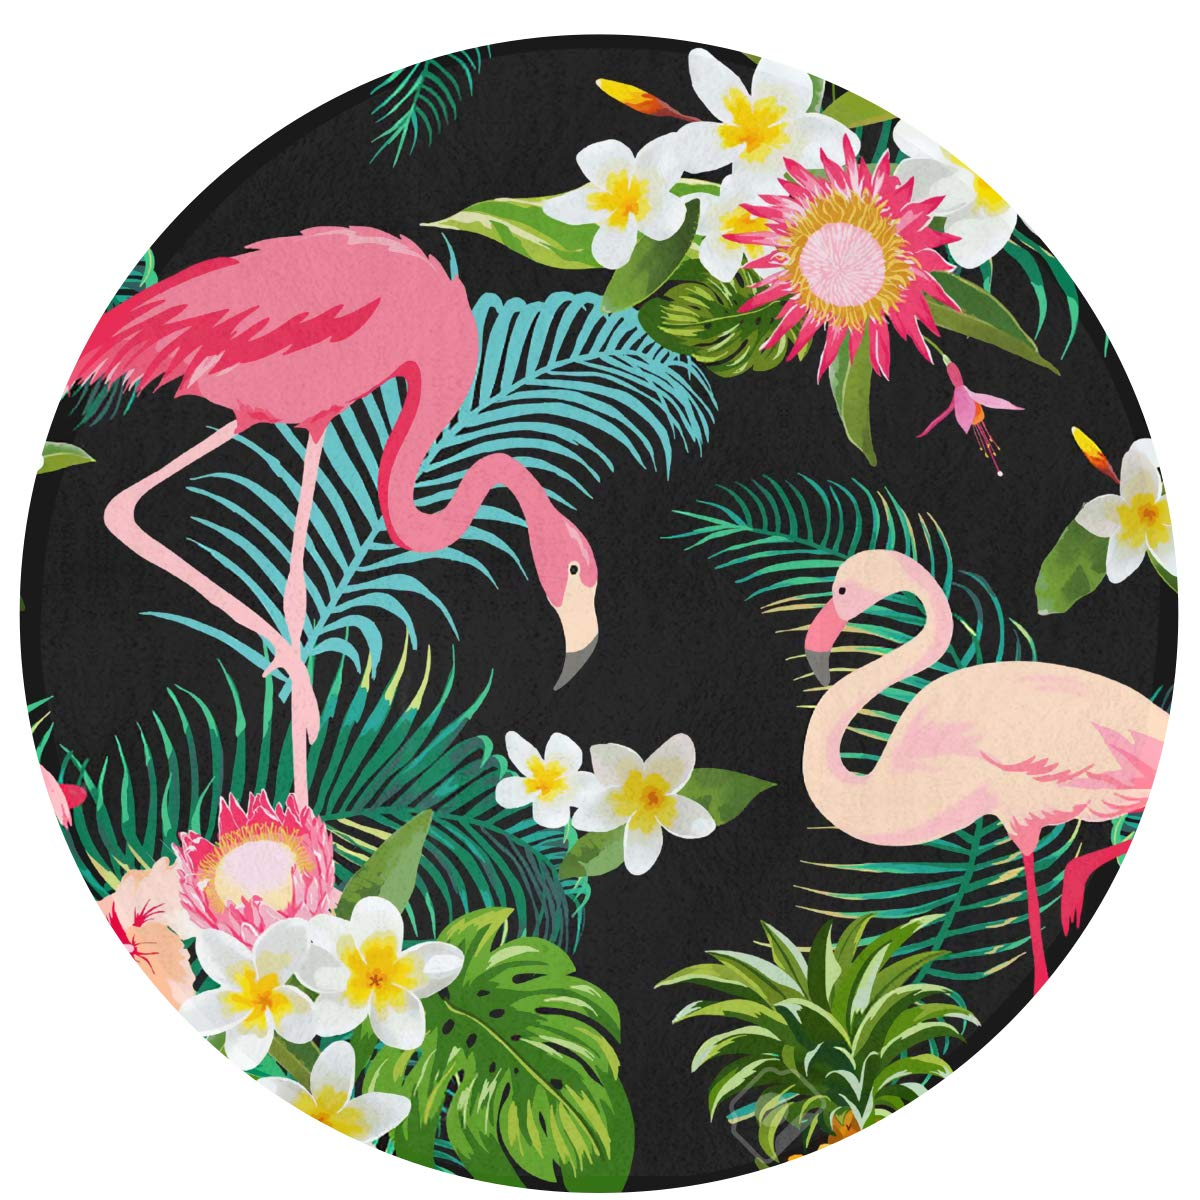 Tropical Jungle Flamingos Floral Comfortable Non-Slip Seat Cushion Circular Chair Cushions Round Mat Round Rug Cute Swivel Chair Mat Stool Cover Pad Round Bath Mat 15.75IN